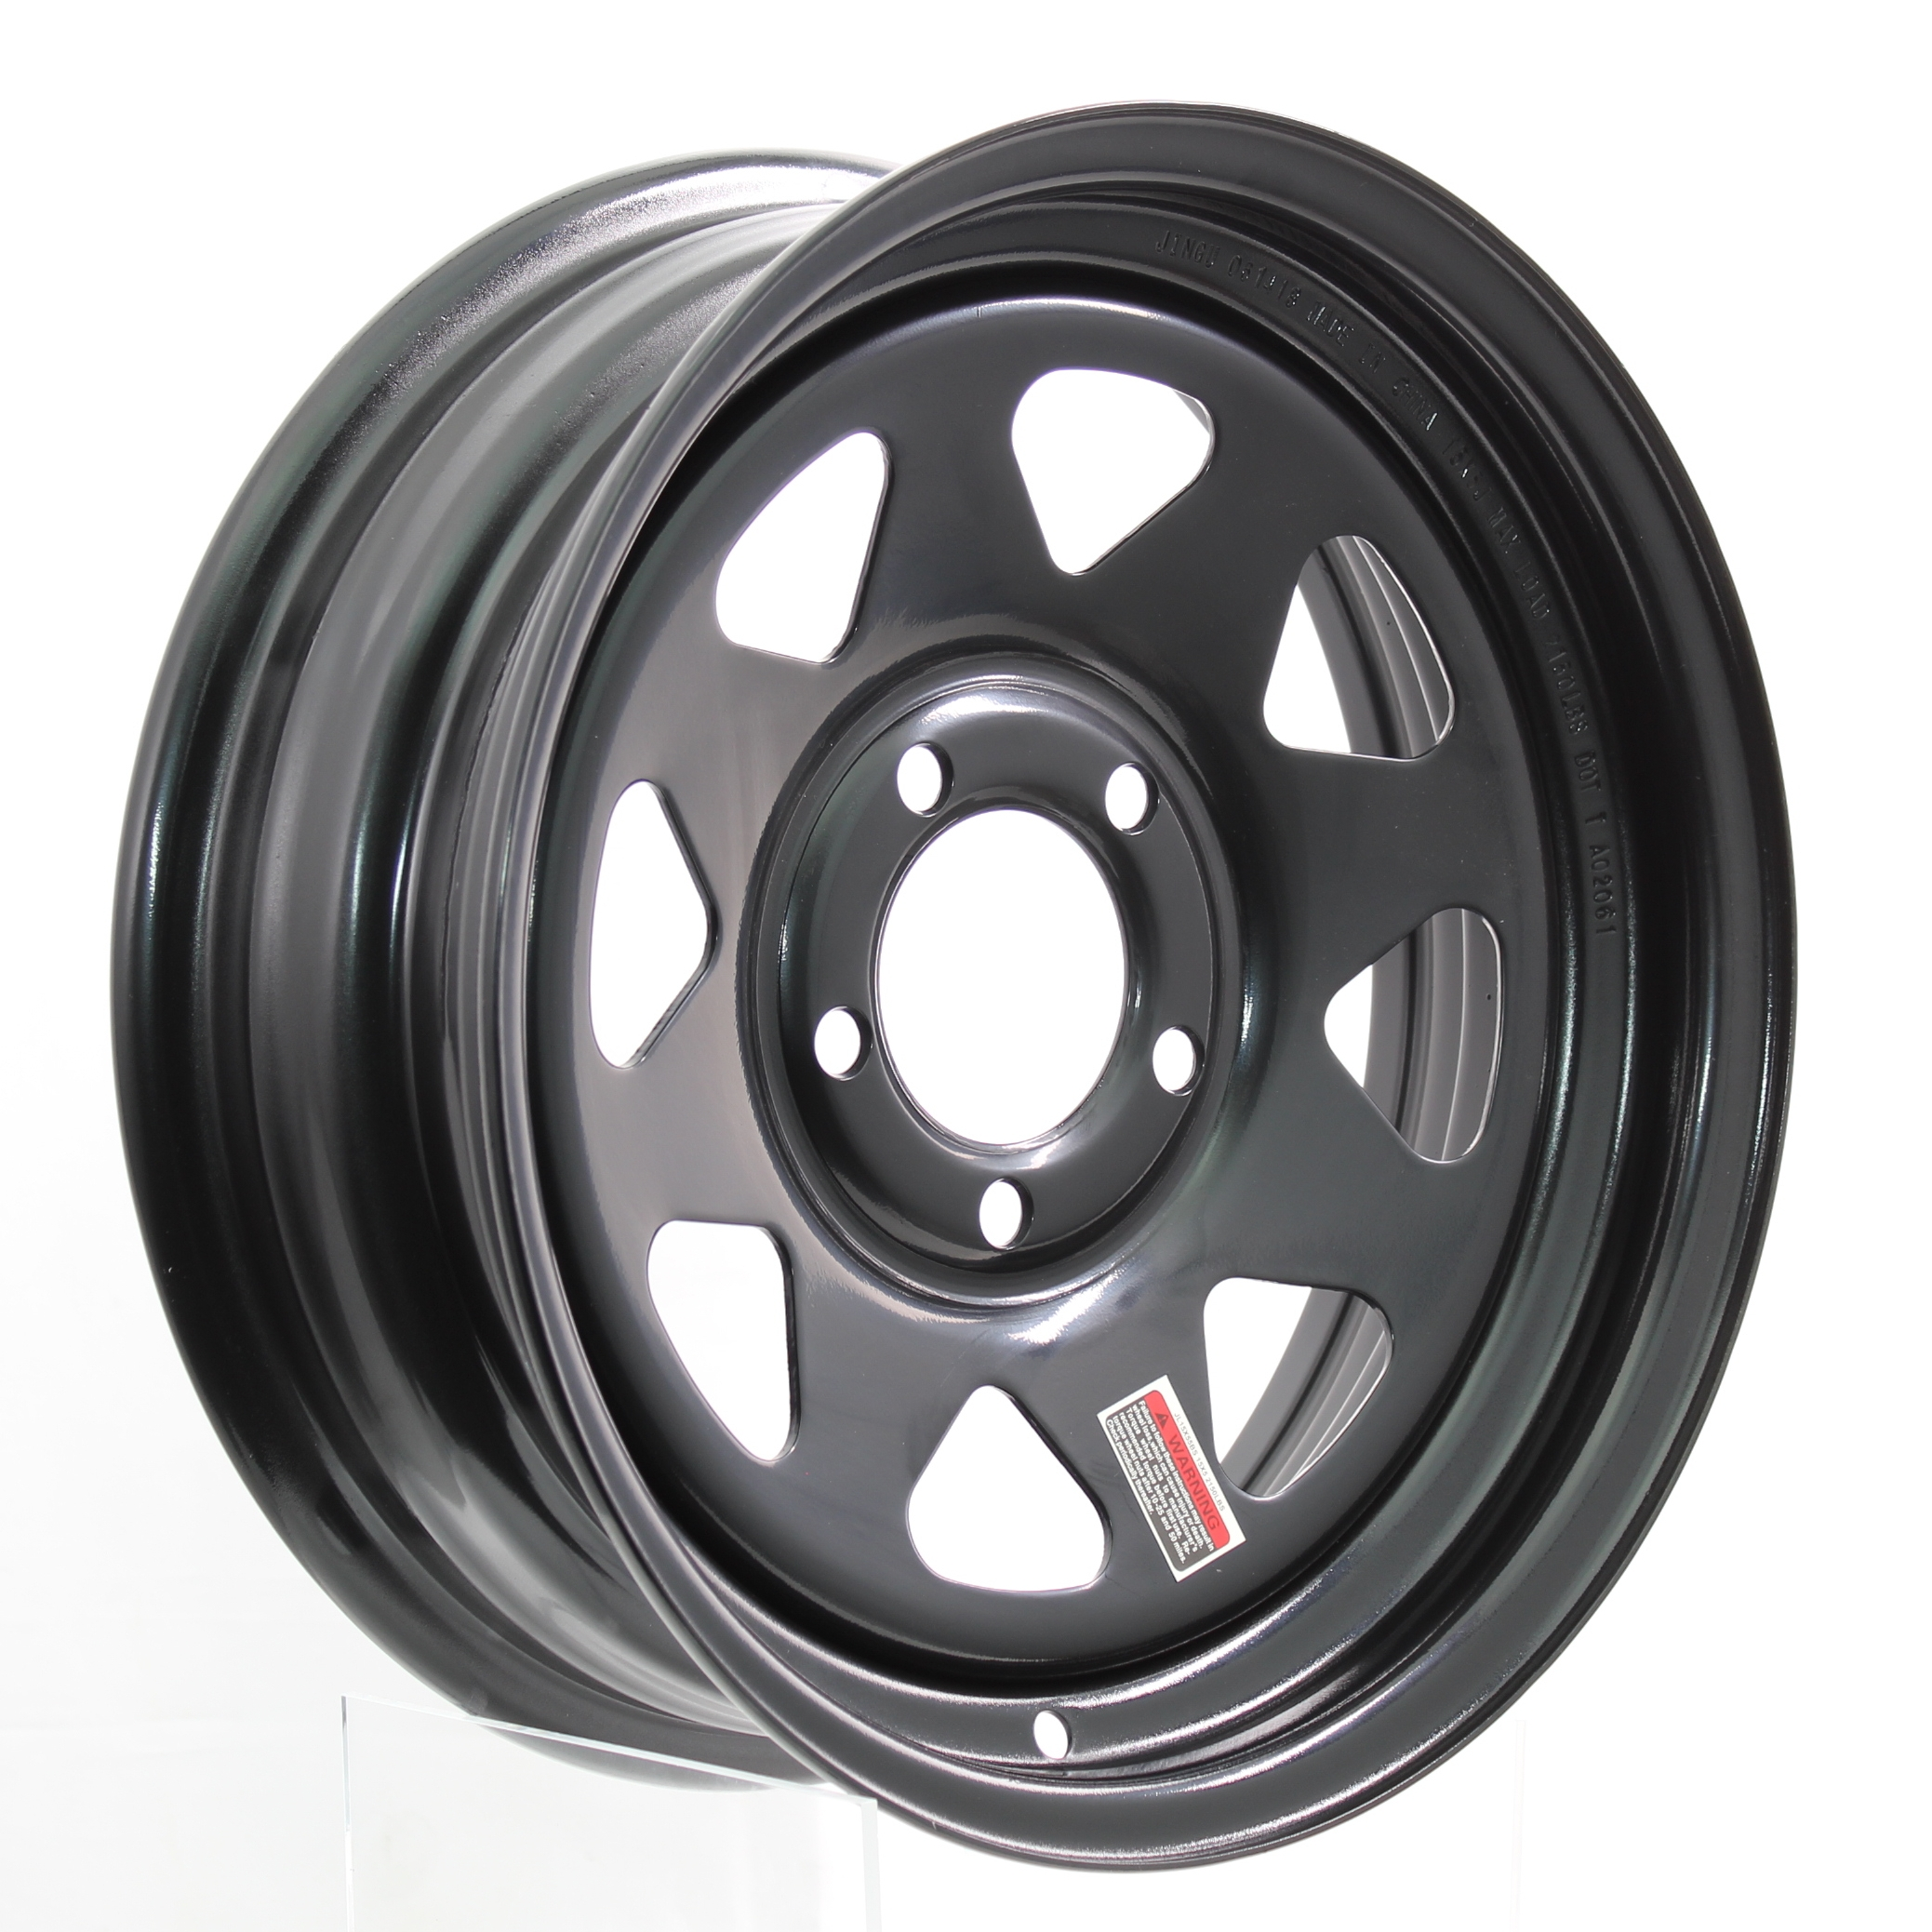 15x5 5-Lug Black Spoke Steel Trailer Wheel Image